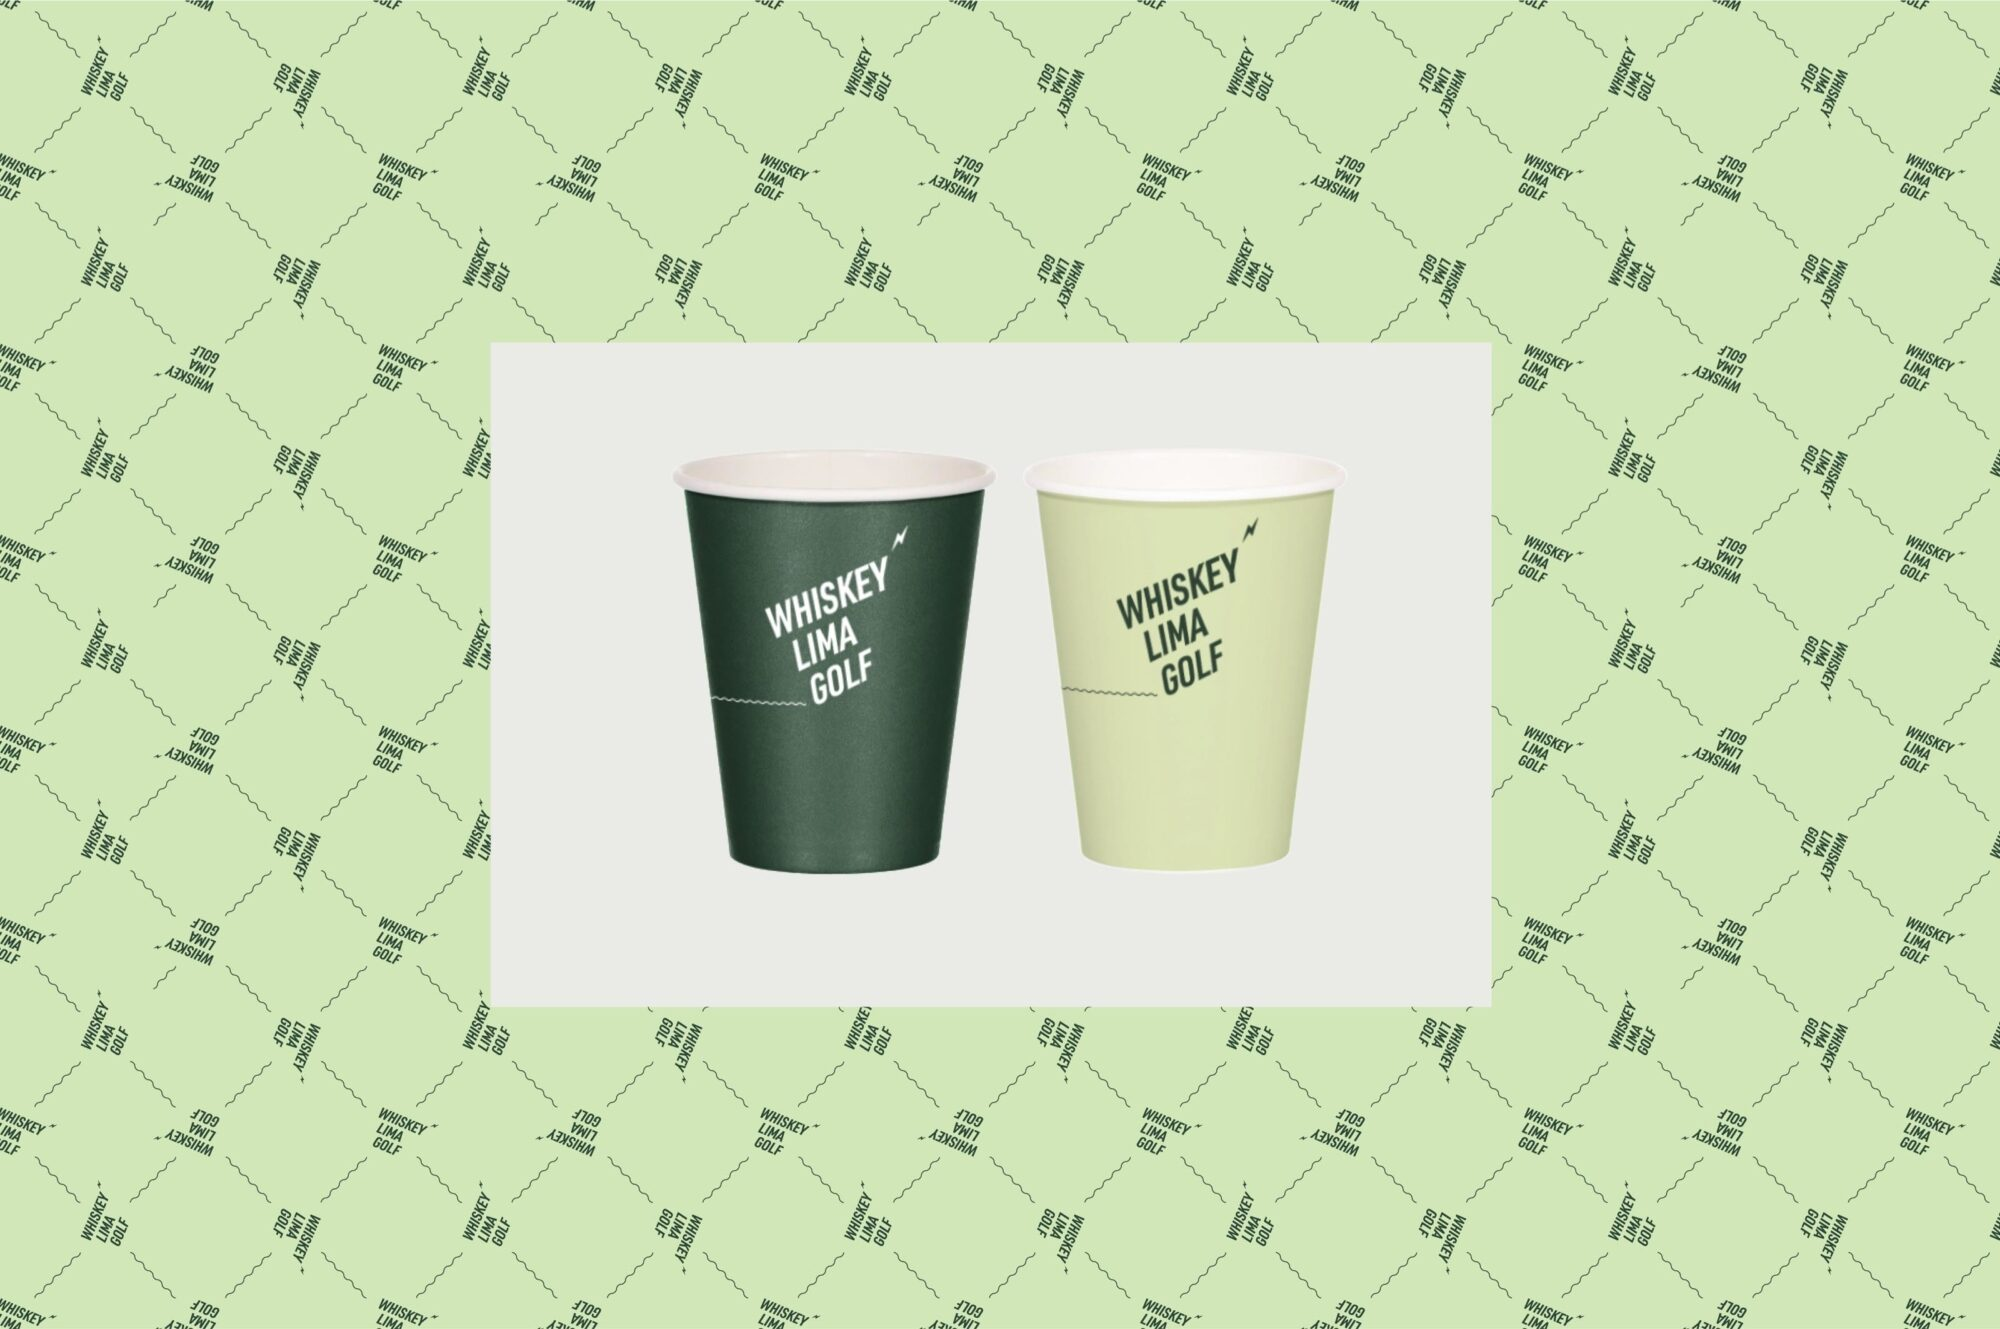 WLG Pattern and take away cup design